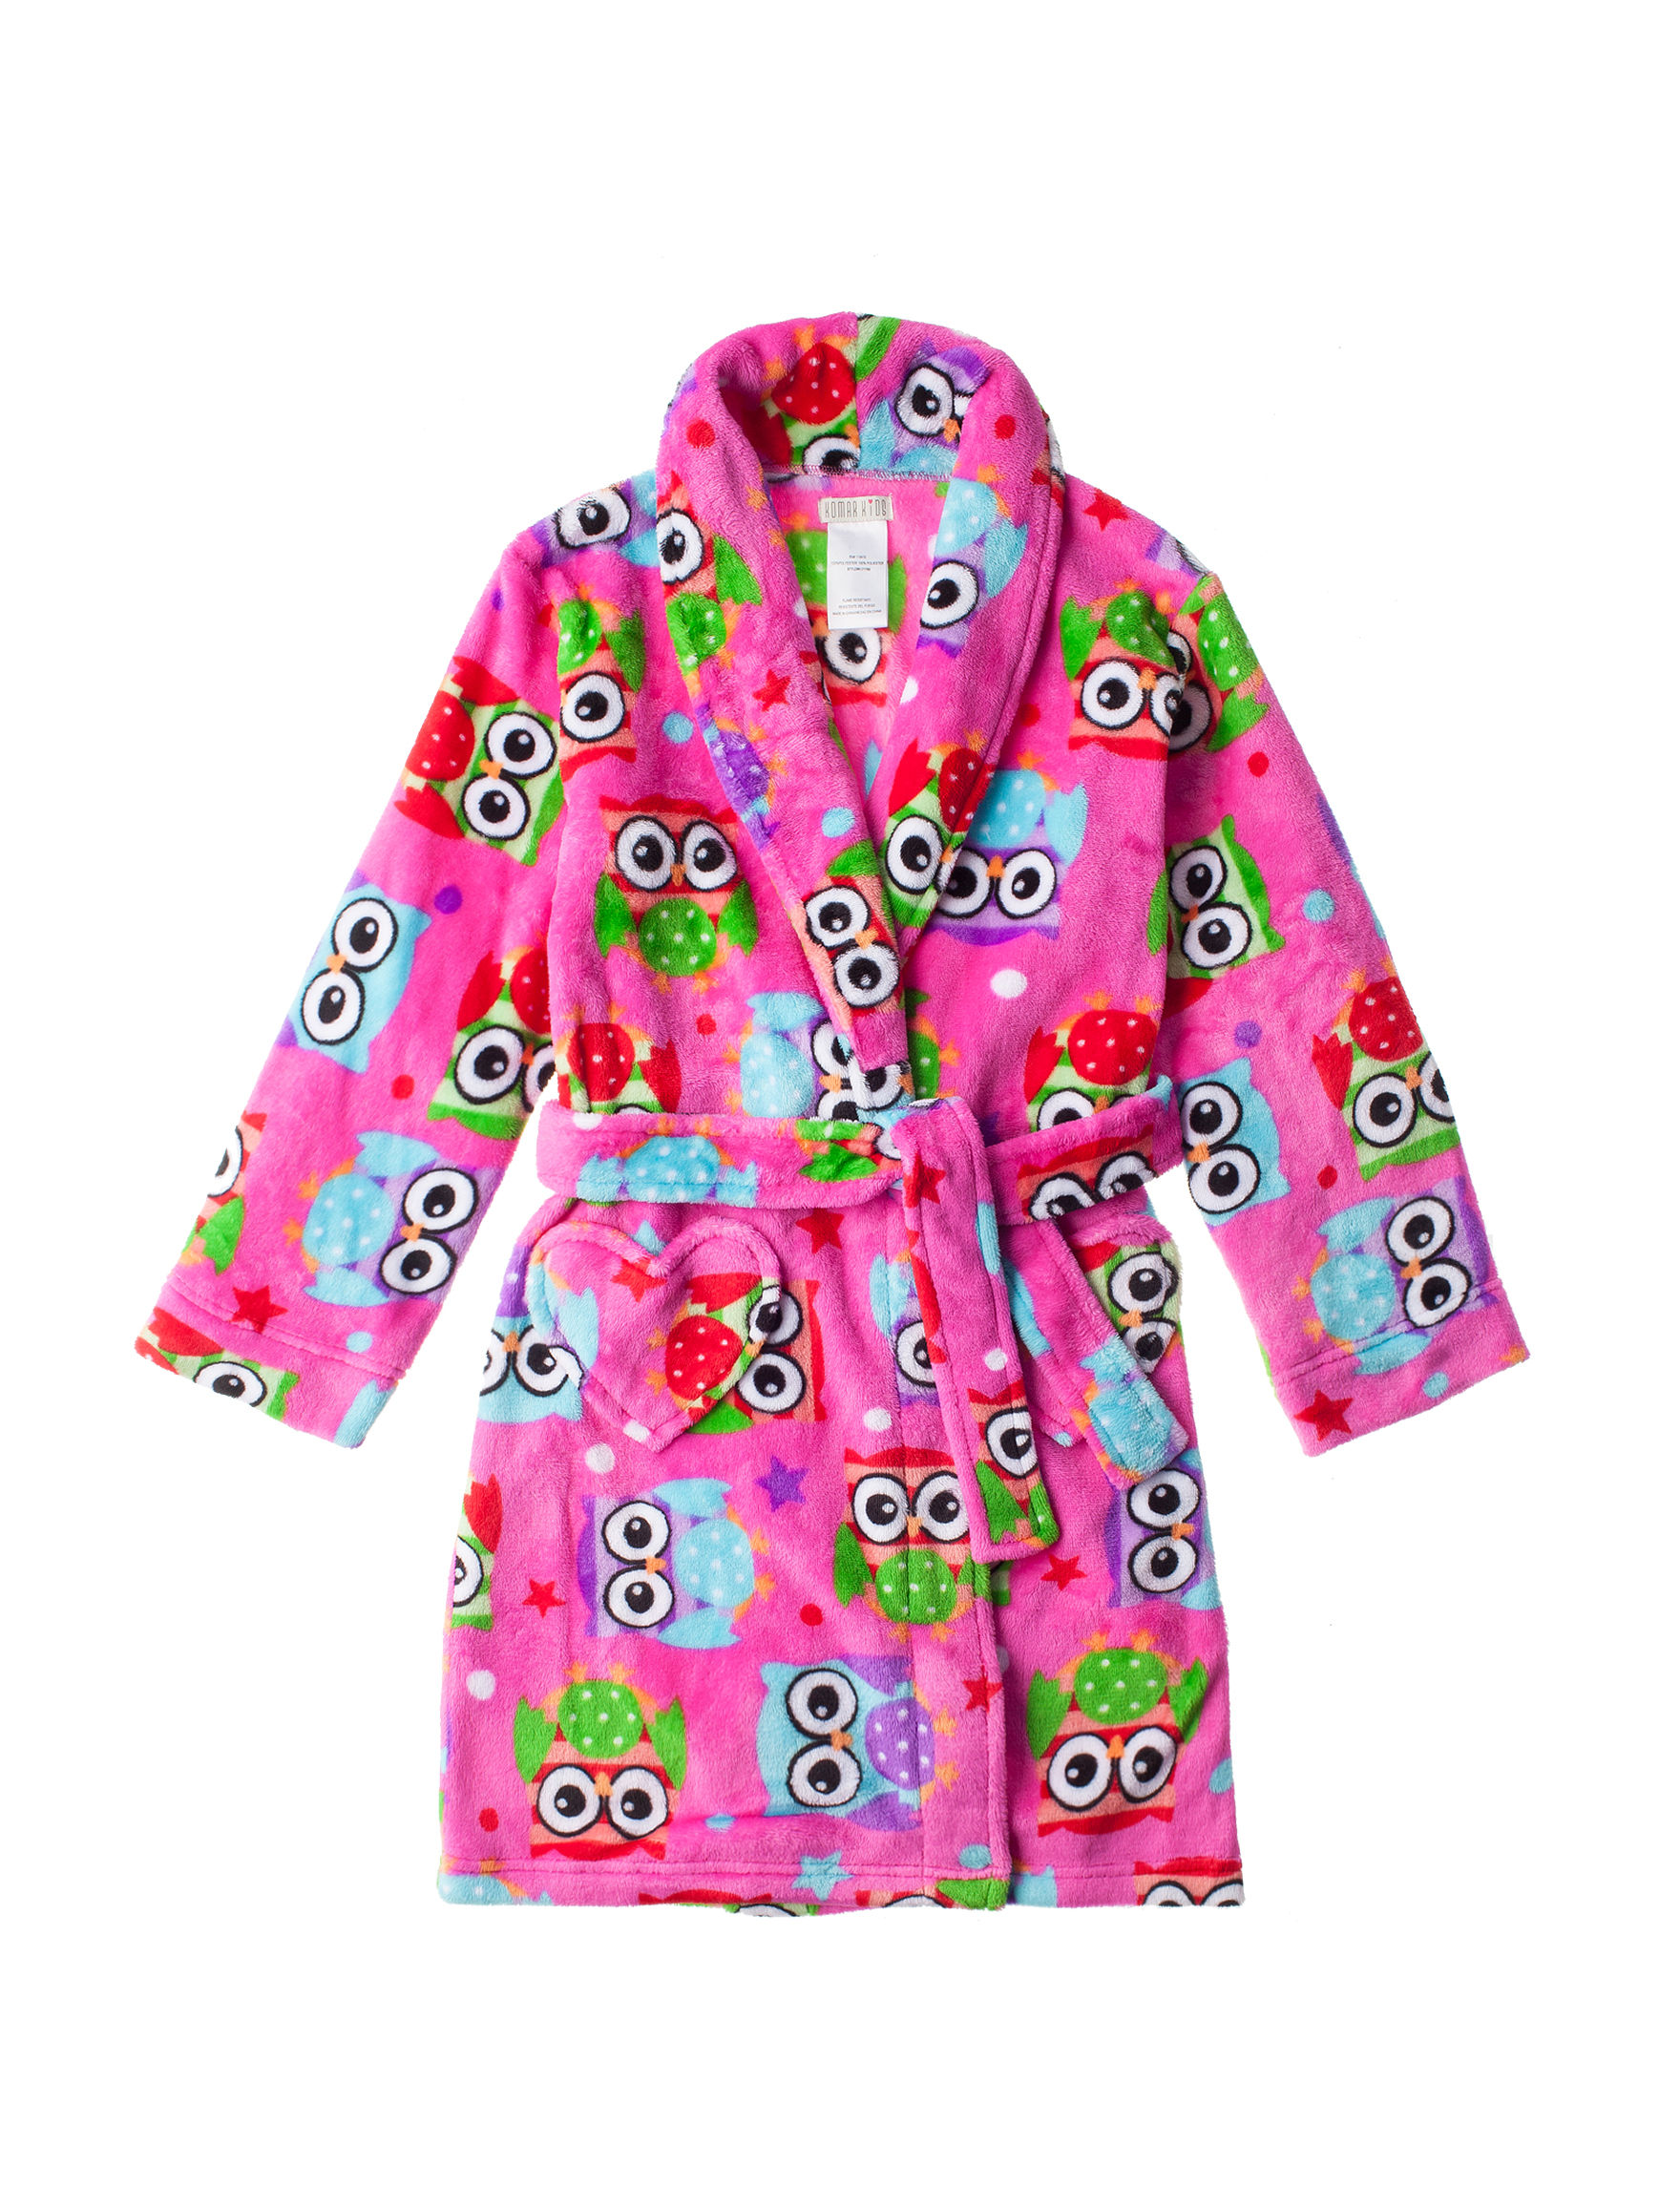 Komar Kids Pink Robes, Wraps & Dusters